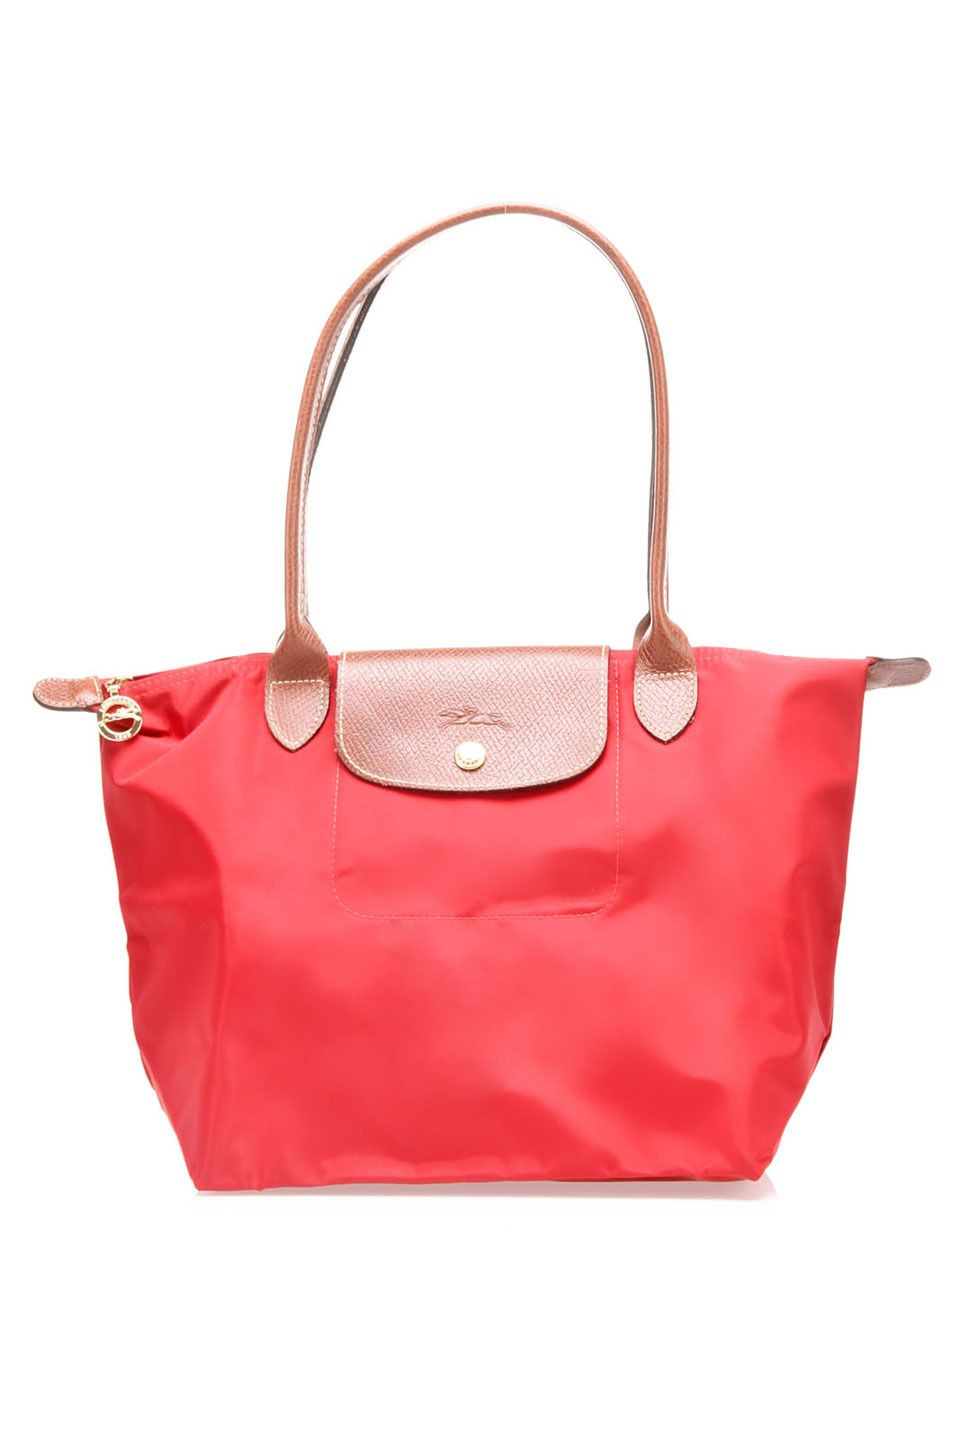 Small Le Pliage Shoulder Bag In Red Founded In 1948 By